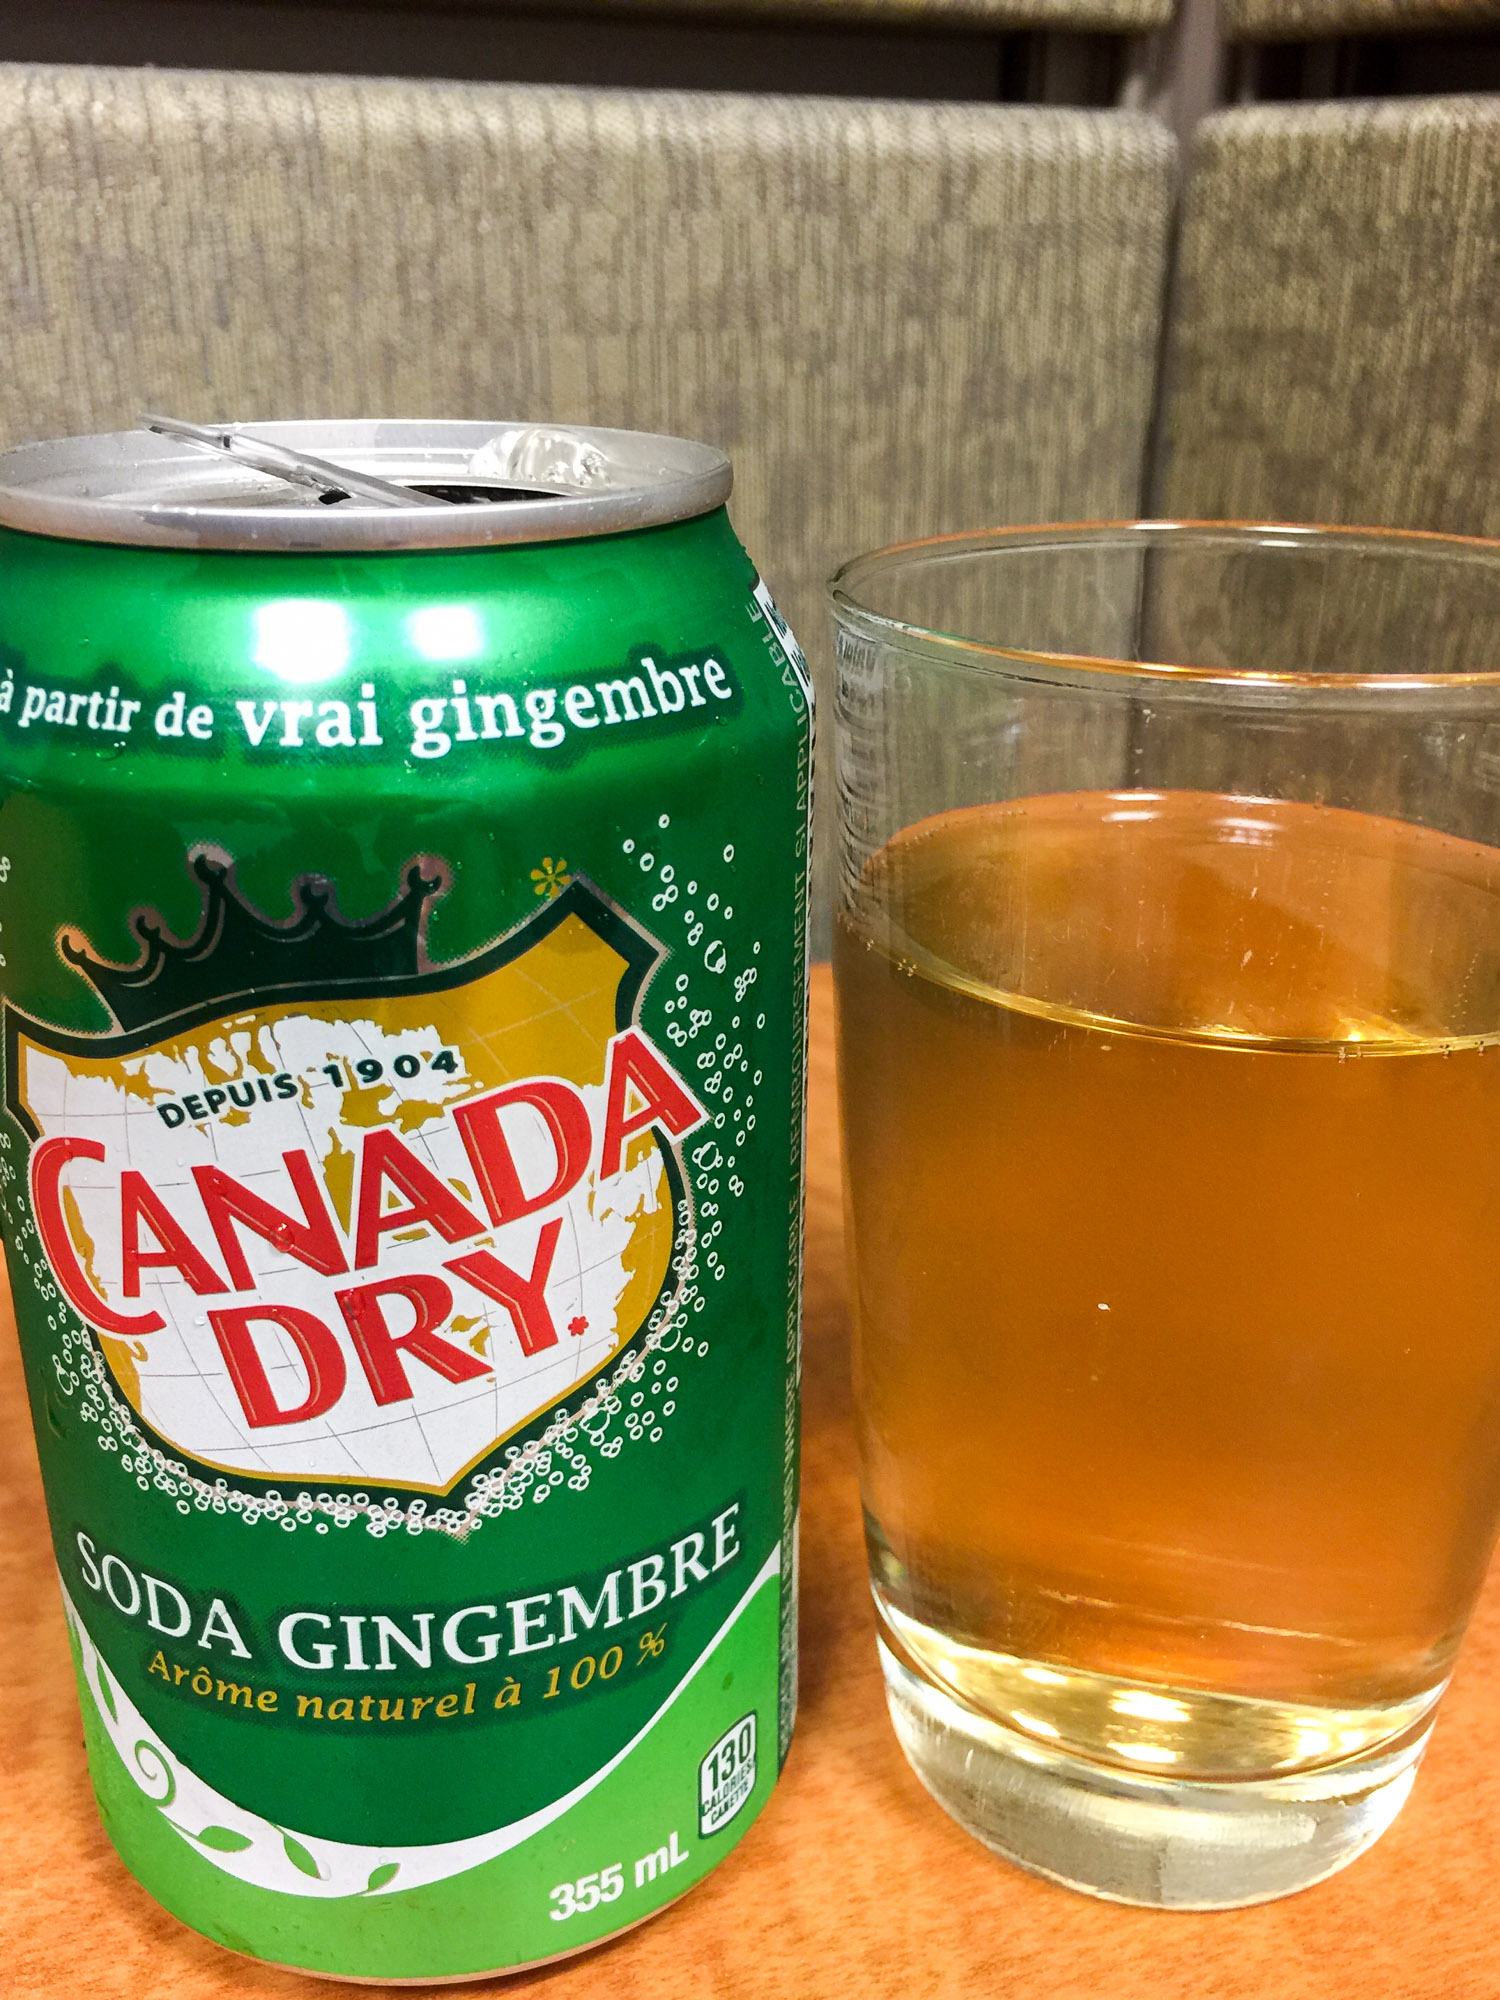 Canada dry at Vancouver Airport